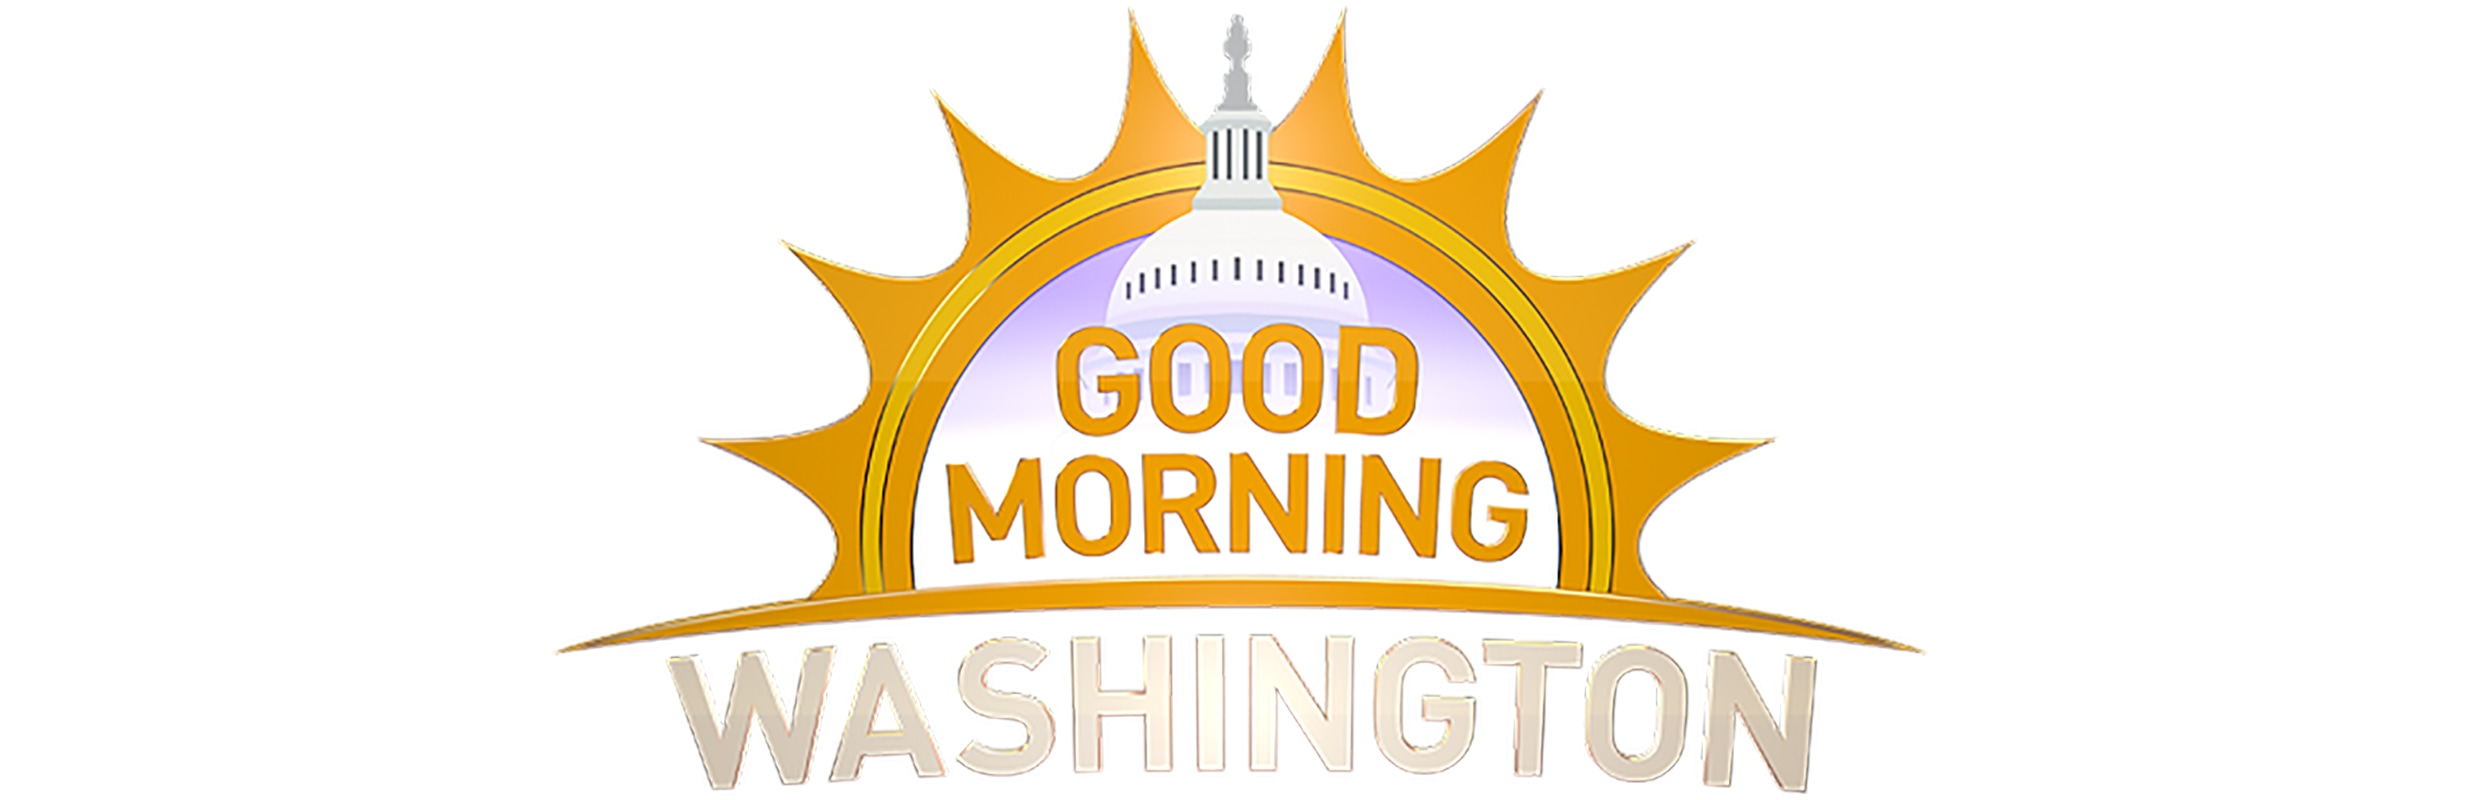 Good morning washington selected